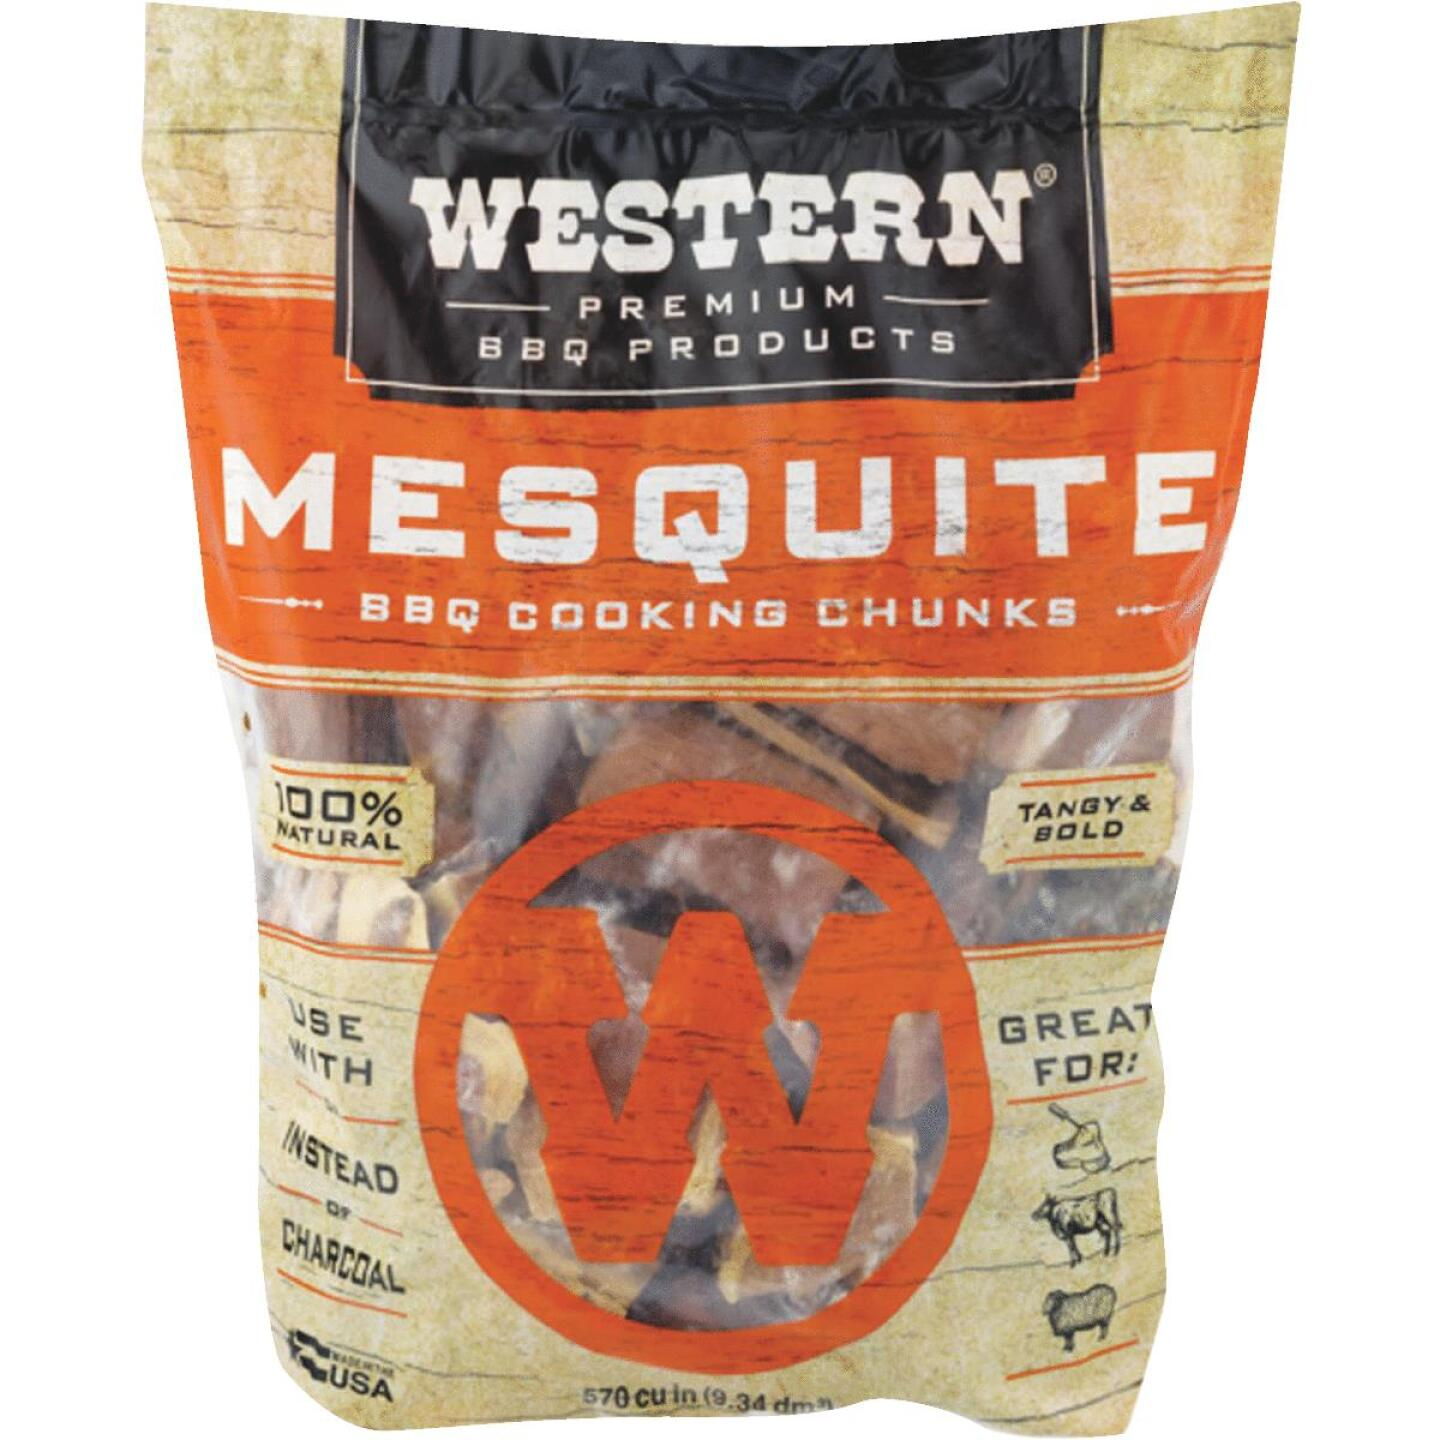 Western 6 Lb. Mesquite Wood Smoking Chunks Image 1